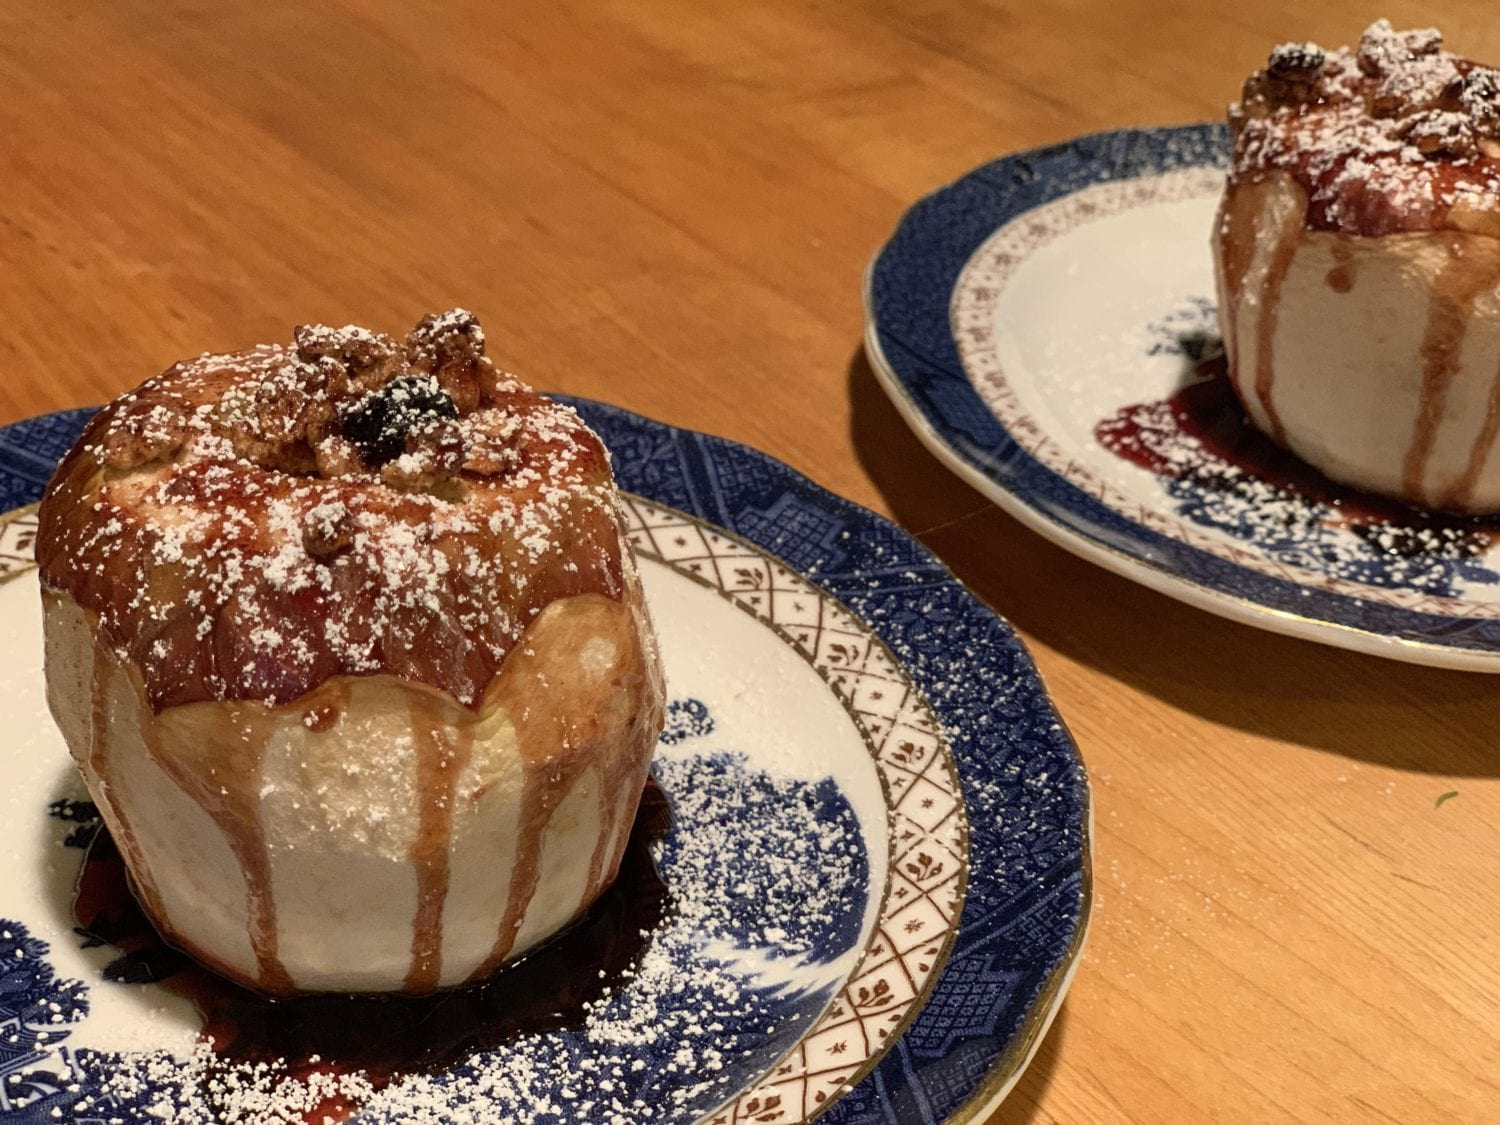 baked apples on blue and white plates